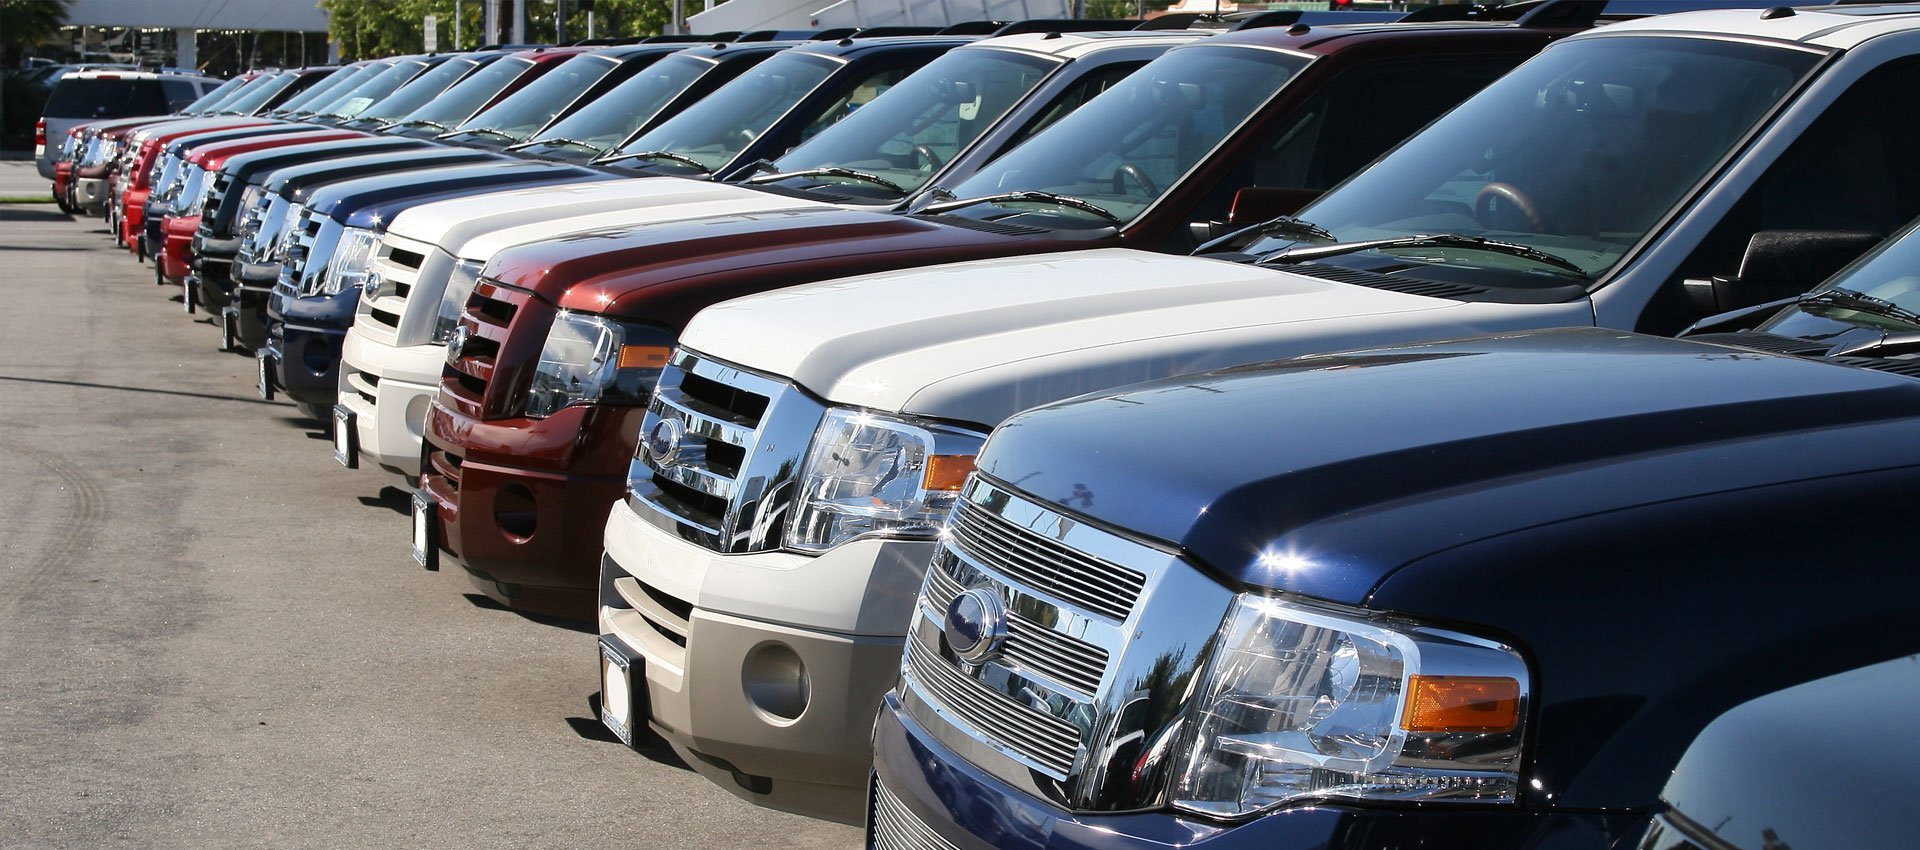 We sell a wide range of used cars in West Drayton